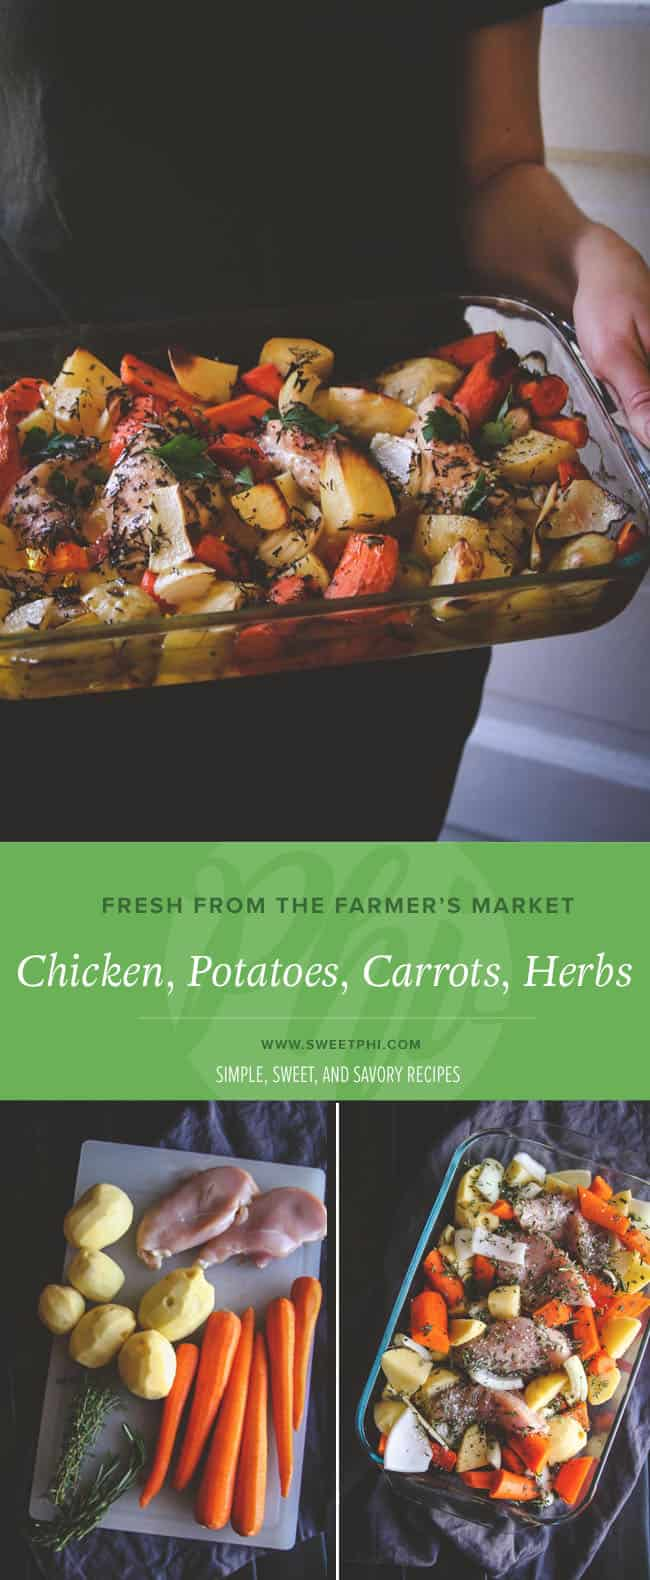 baked chicken, vegetables, potatoes and herbs make a perfect dish made from Farmer's Market finds